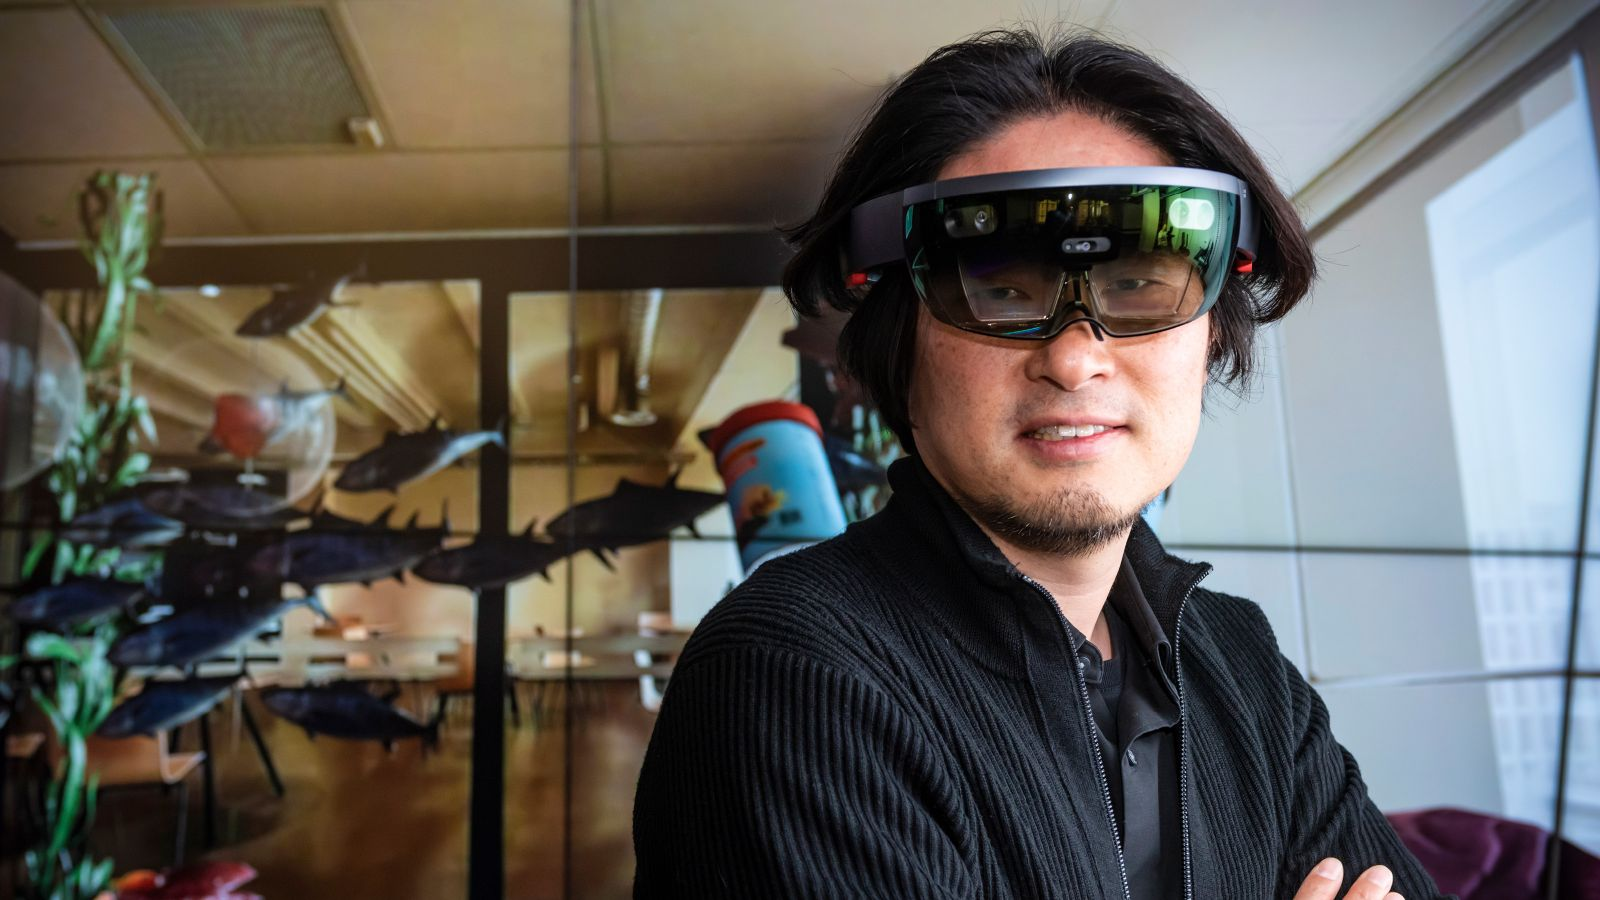 Associate Professor Taehyun Rhee stands in a room wearing a virtual reality headset. Animated fish are floating through the air around him.